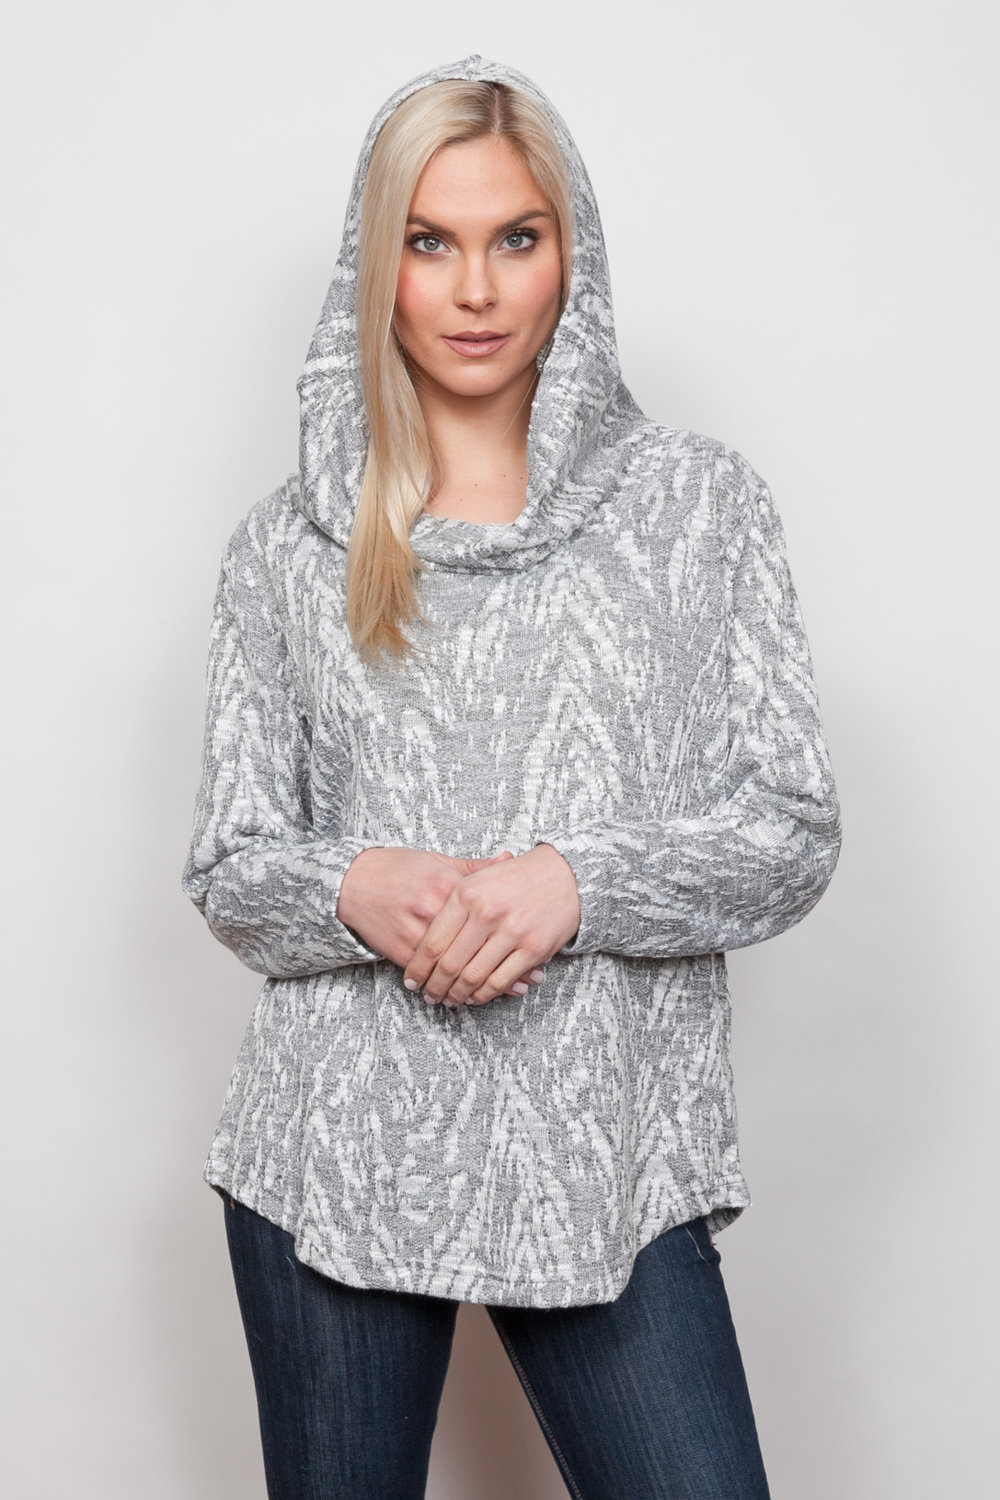 Copy of Style # 39434-18, p 11 </br>Snow Cat French Terry </br>Color: Grey Heather